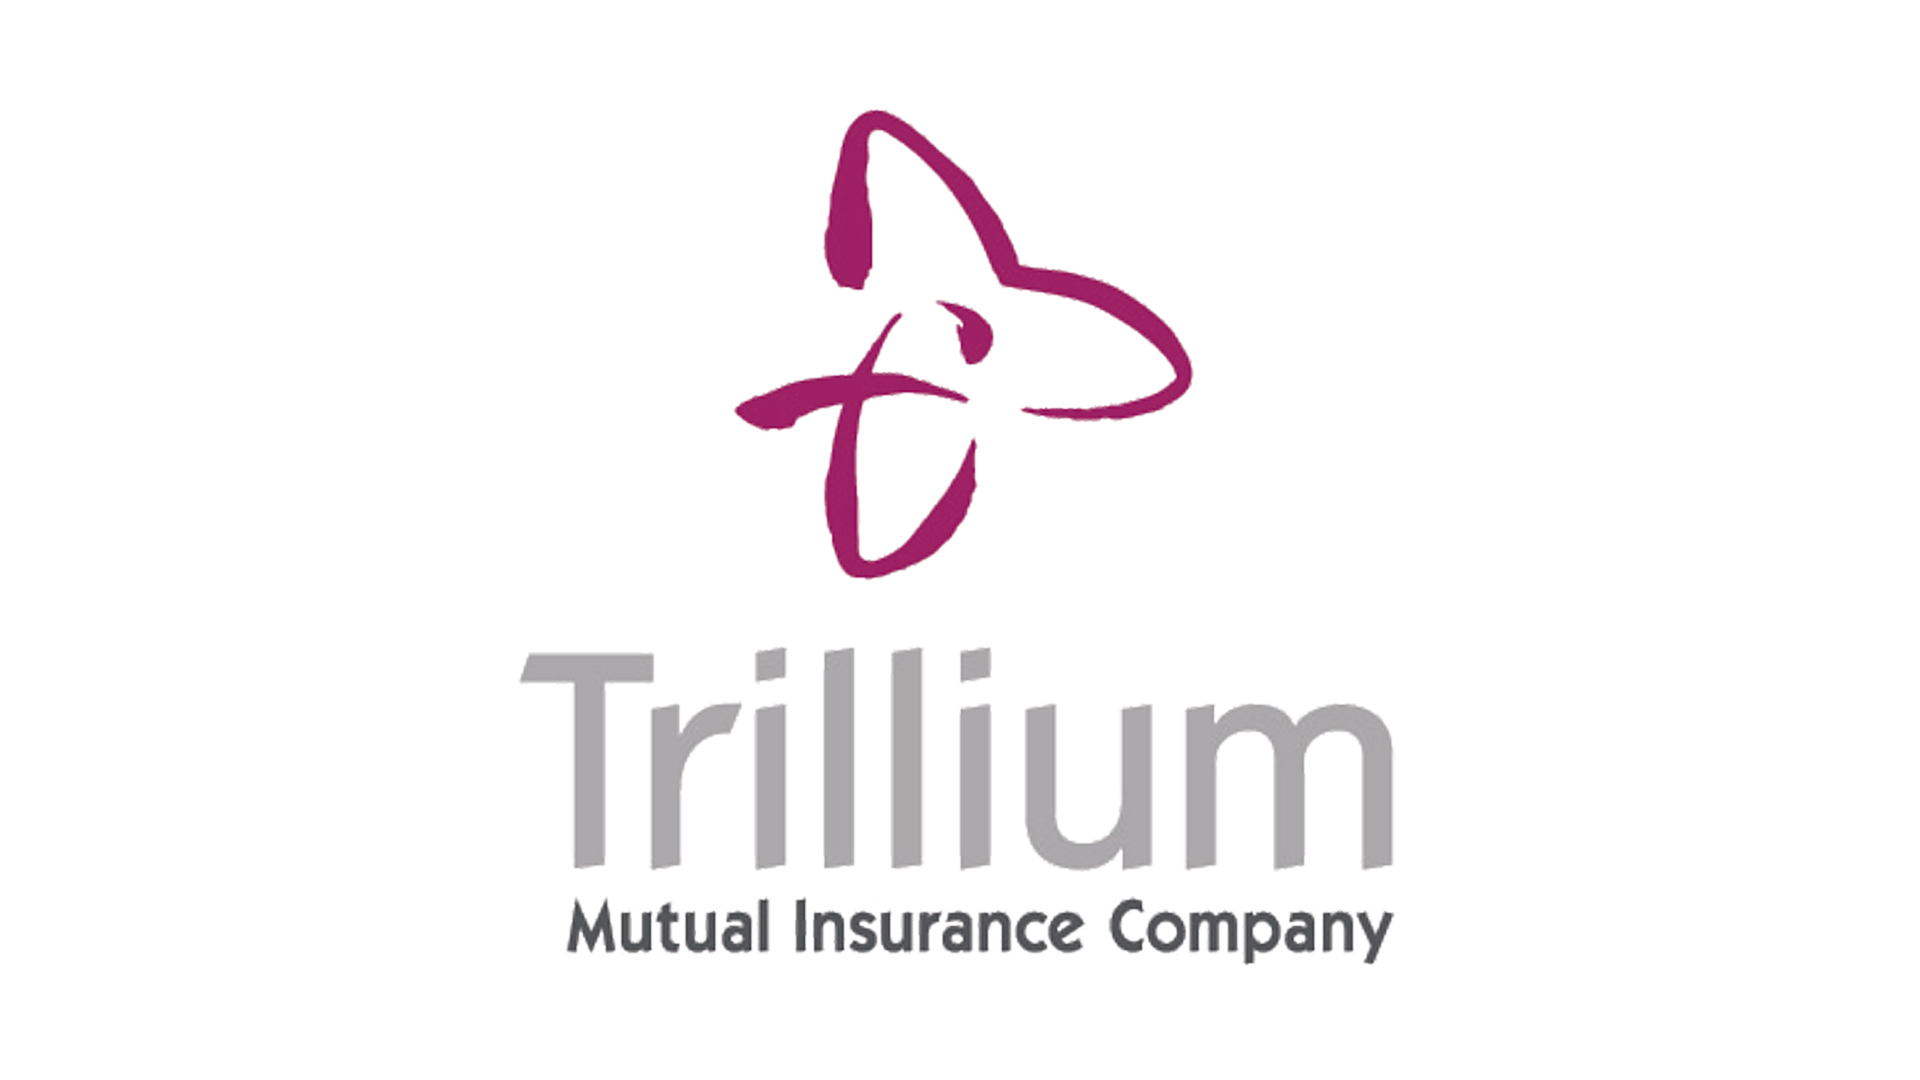 Trilliam-Mutual-Insurance-Logo.jpg